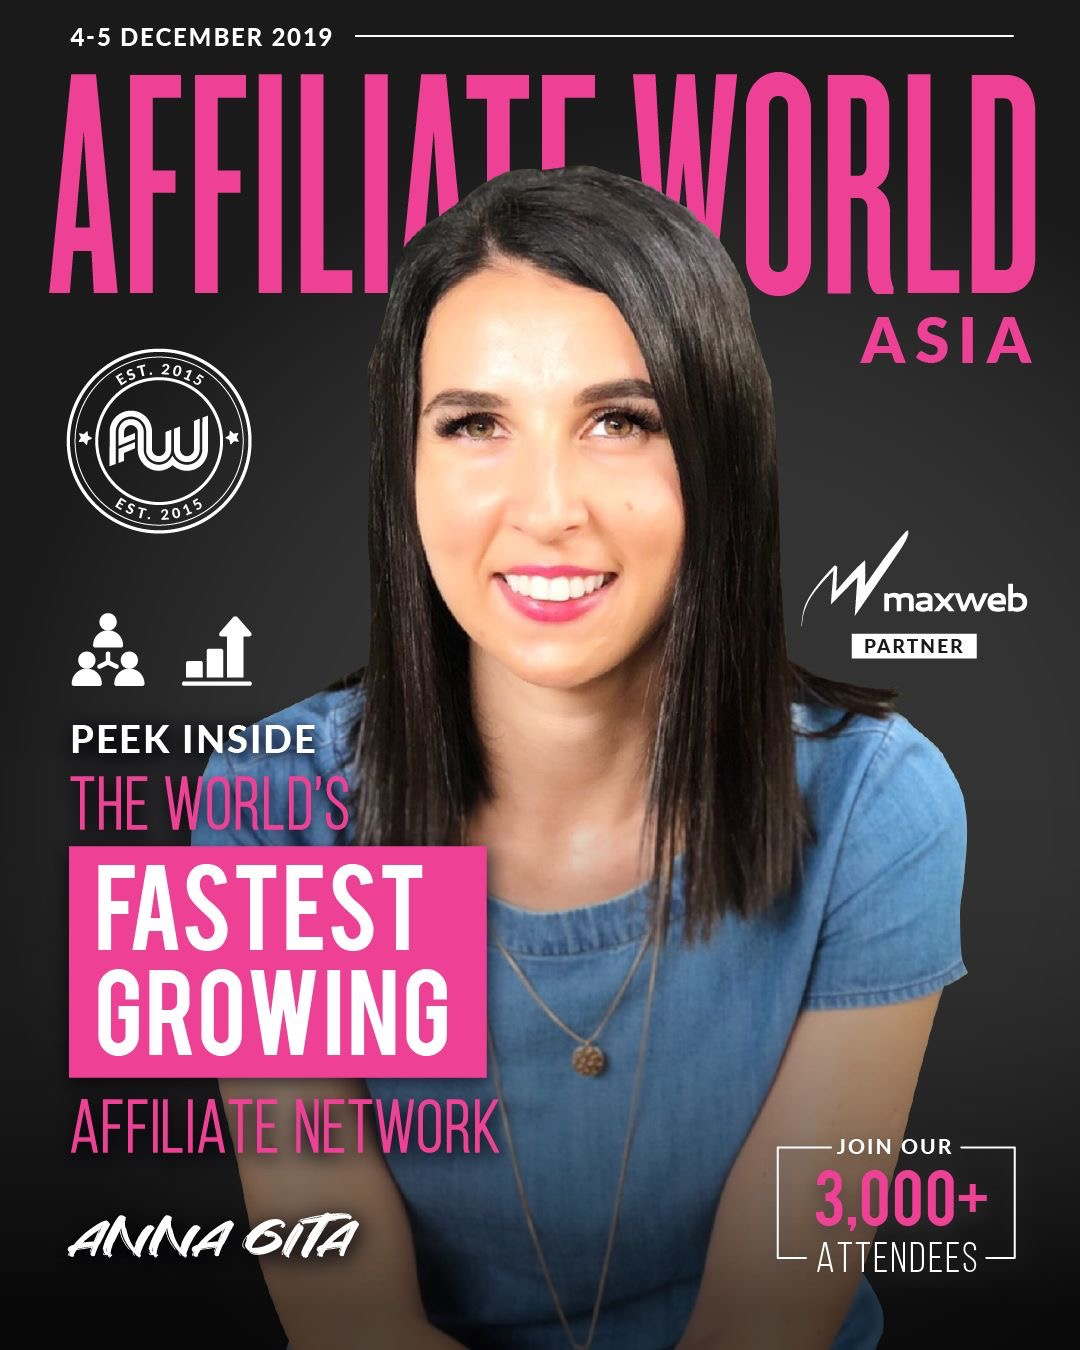 Anna Gita on the cover of AffiliateWorld Asia Magazine